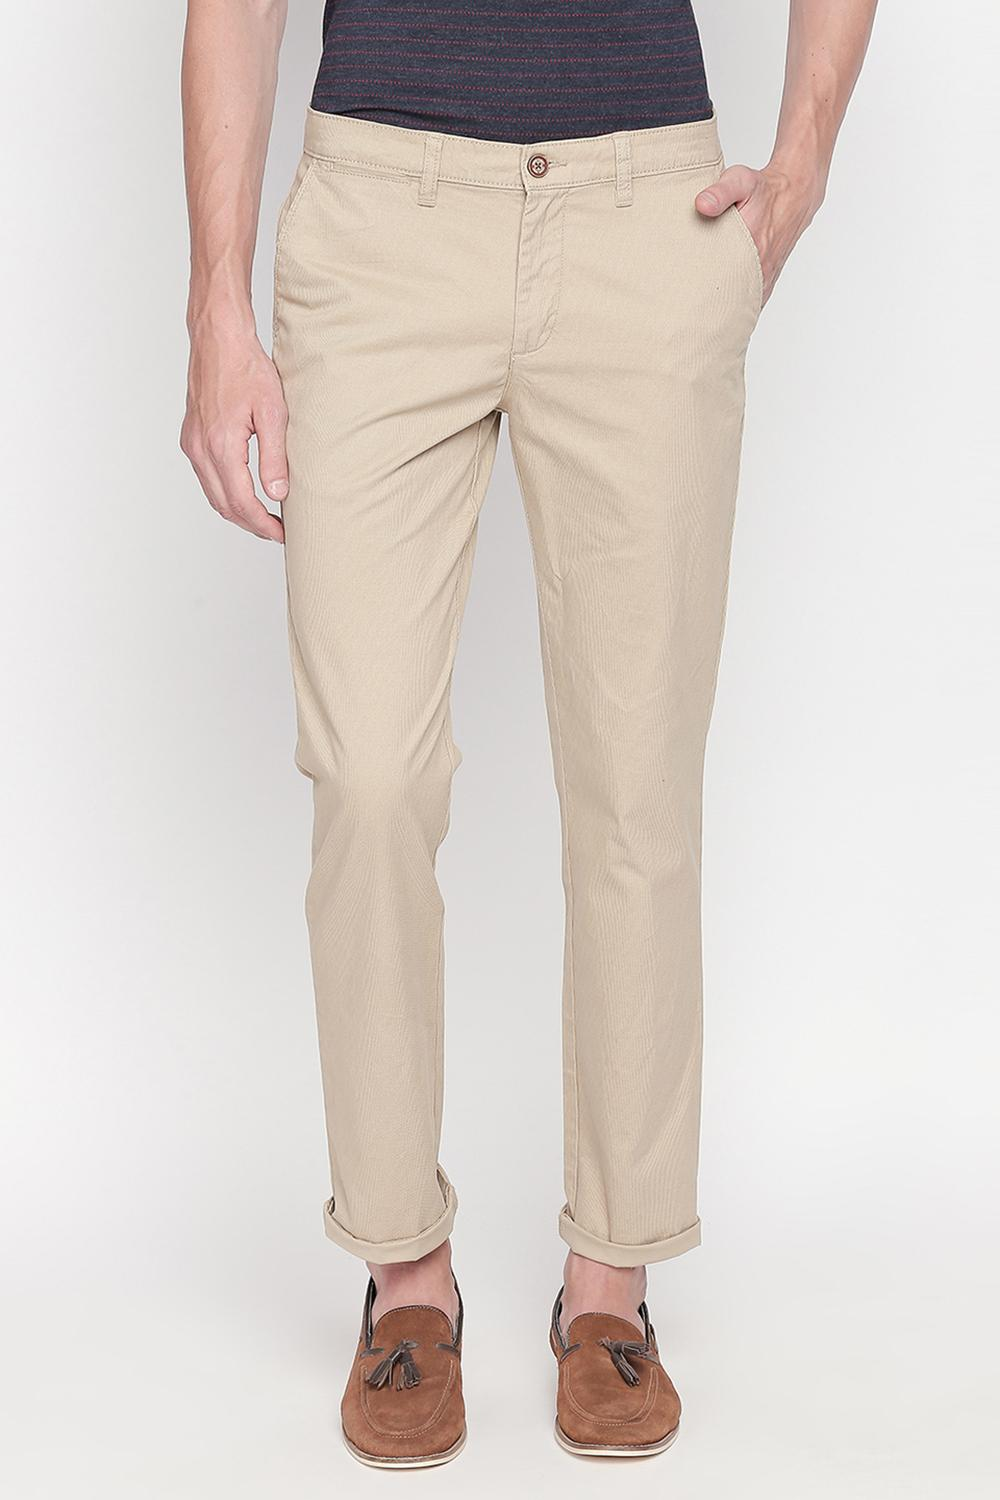 0fad83557 Buy Mens Trousers and Chinos Online in India